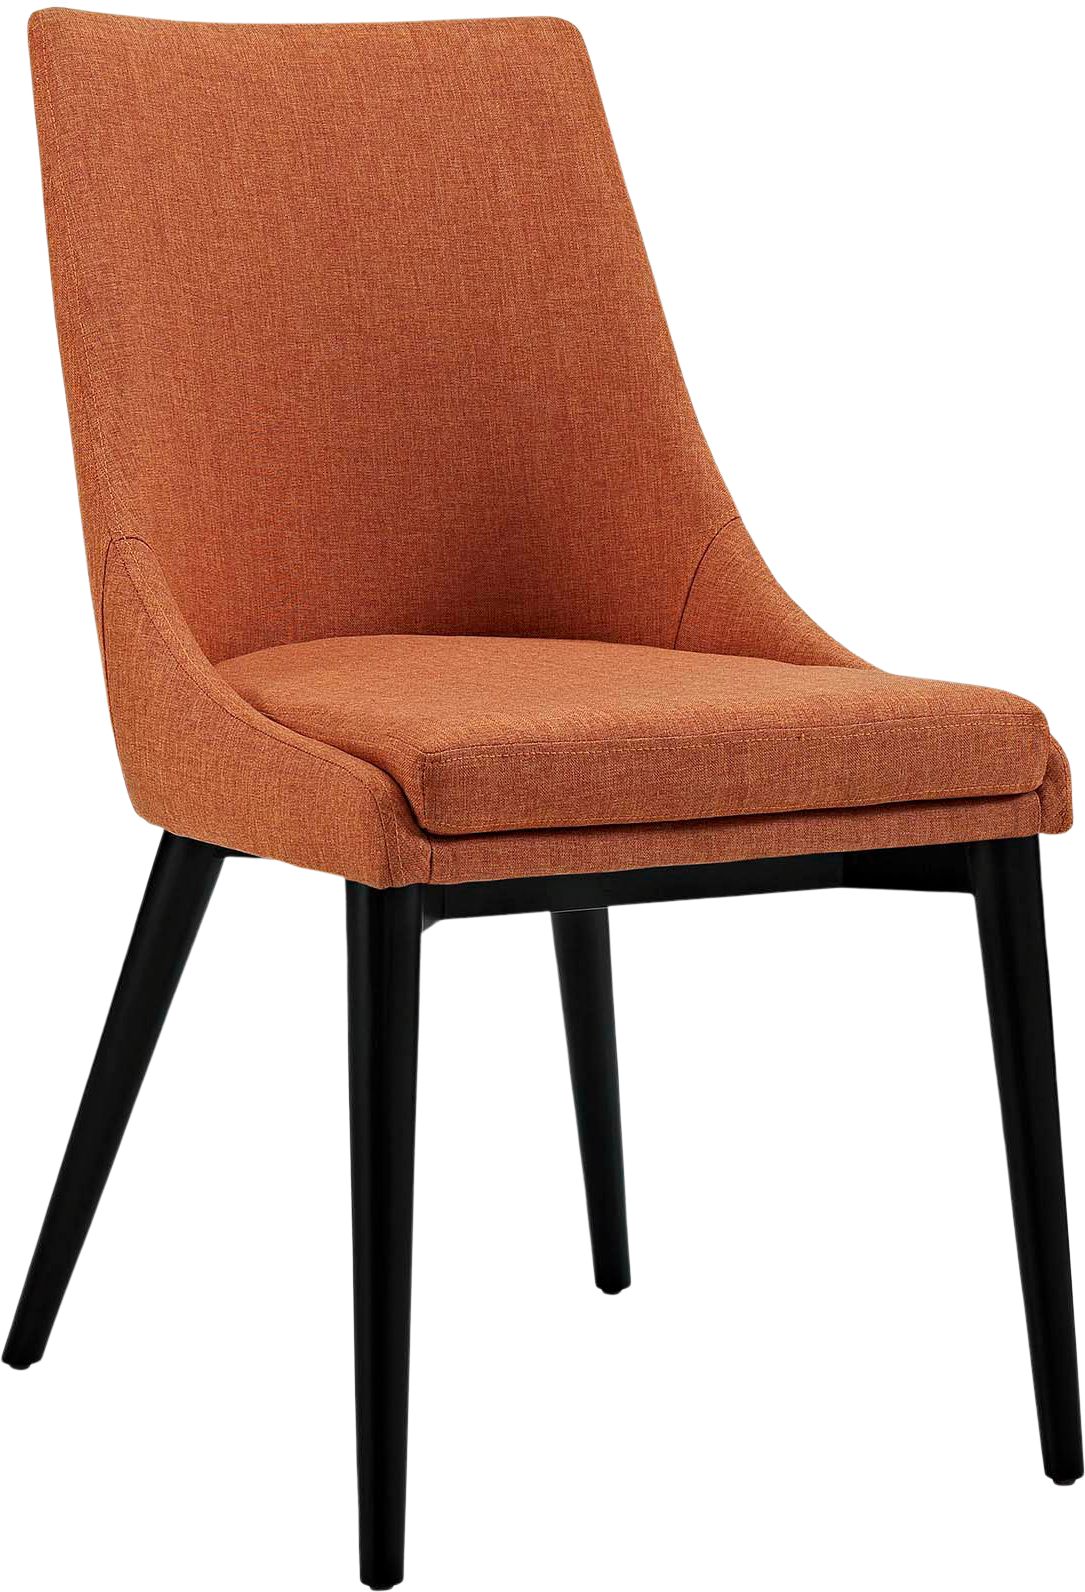 Viscount Fabric Dining Chair, Orange - Spruce Up: Search - dining chairs, black, minimalist